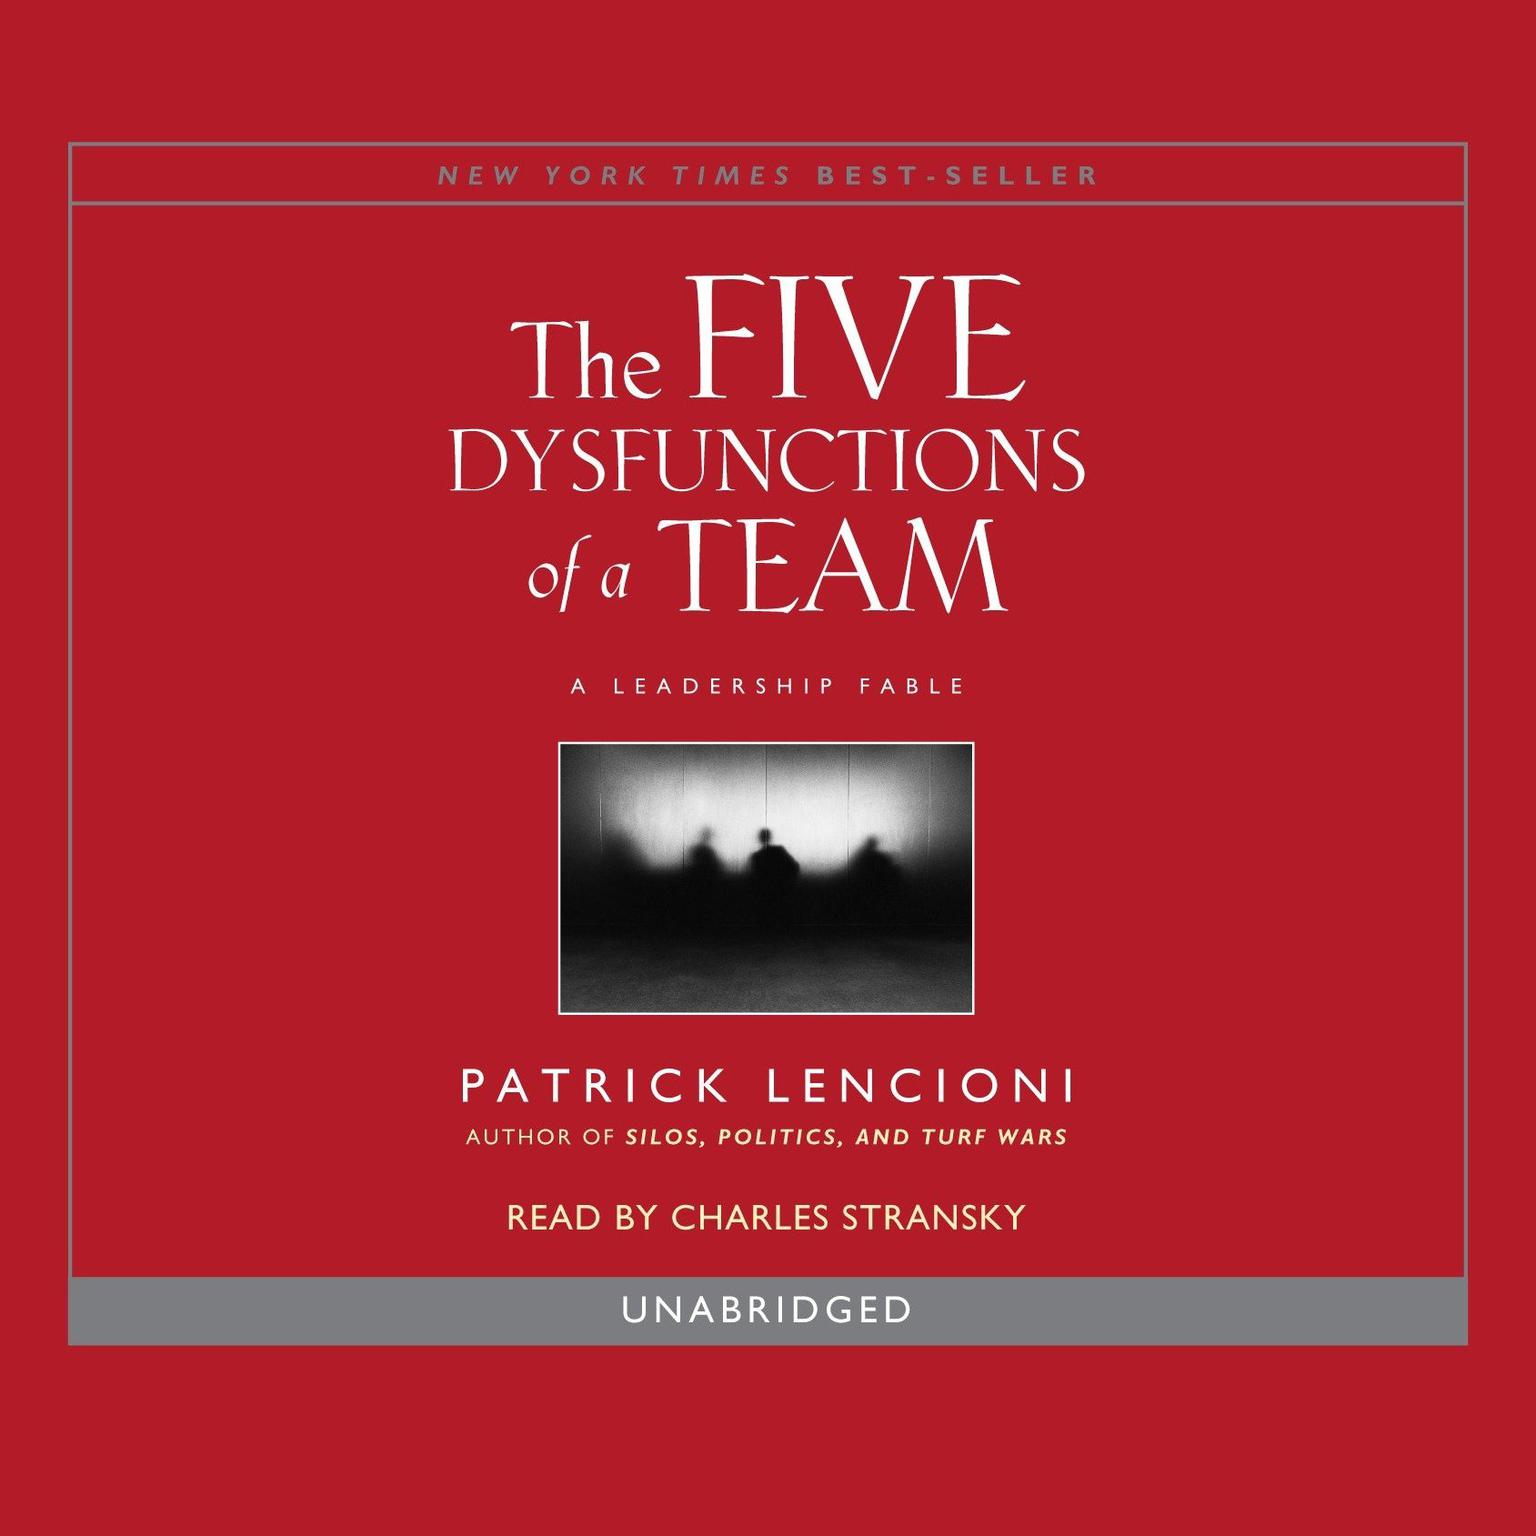 The Five Dysfunctions of a Team: A Leadership Fable - Patrick Lencioni - quotes, rating, reviews, where to buy